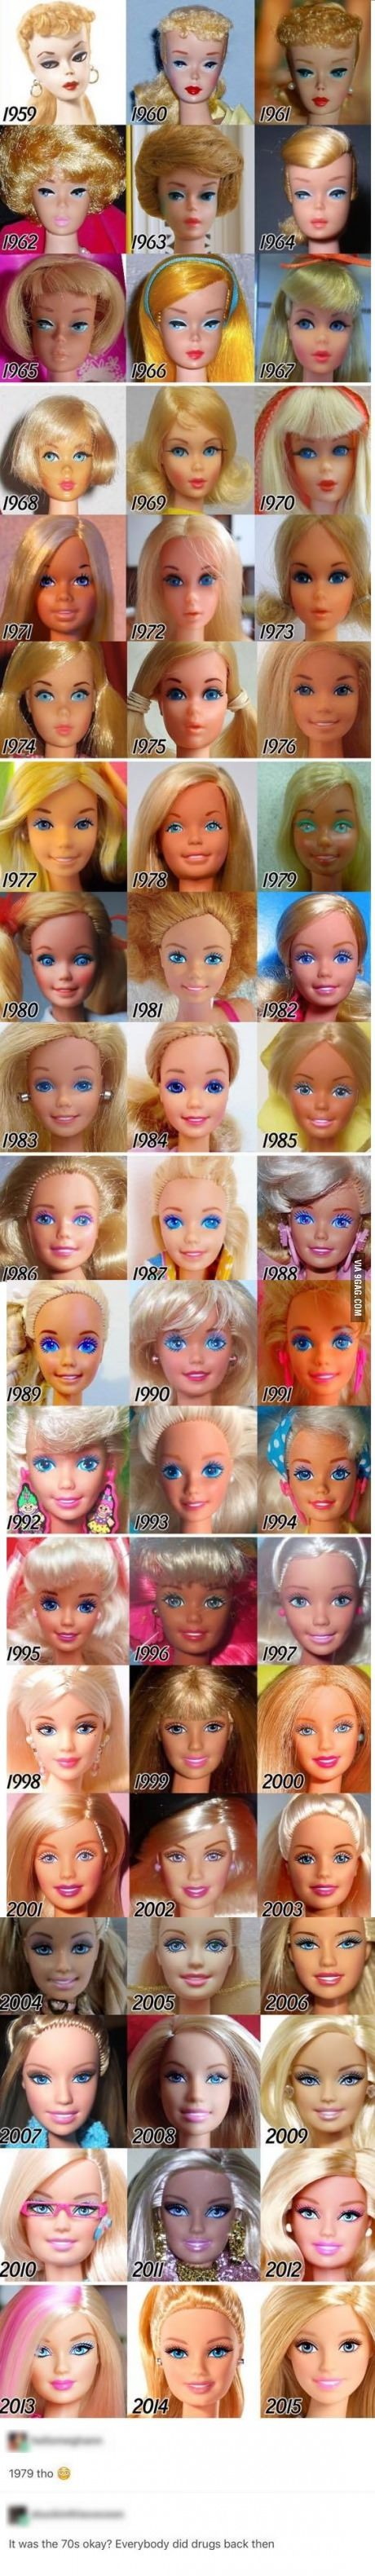 Barbies from 1959 - 2015 | Barbie | Pinterest | Change, Dolls and Bodies